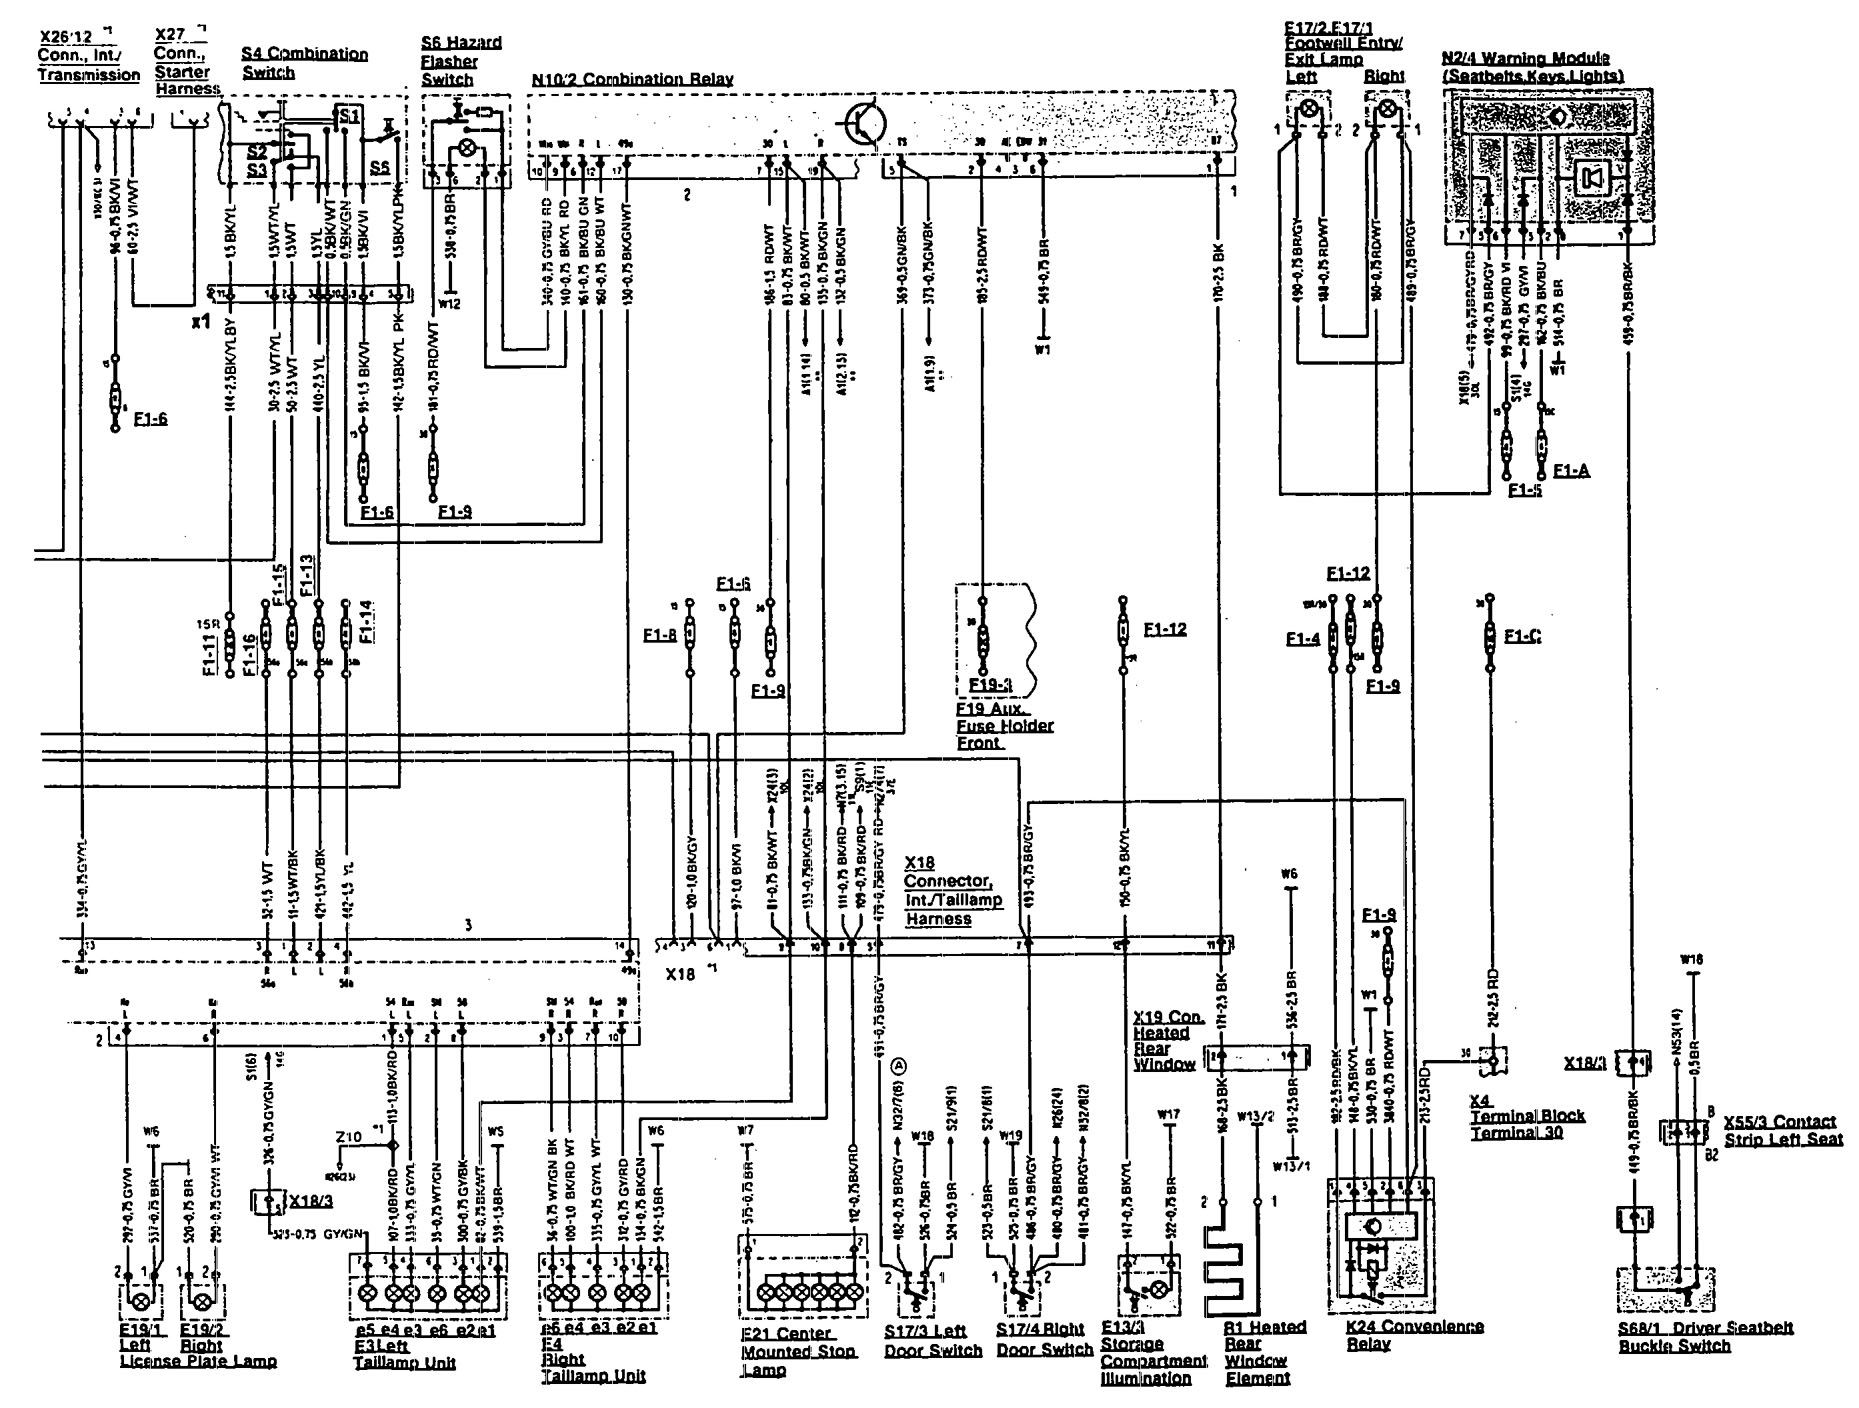 Mercedes Benz 500sl Fuse Box Diagram • Wiring Diagram For Free